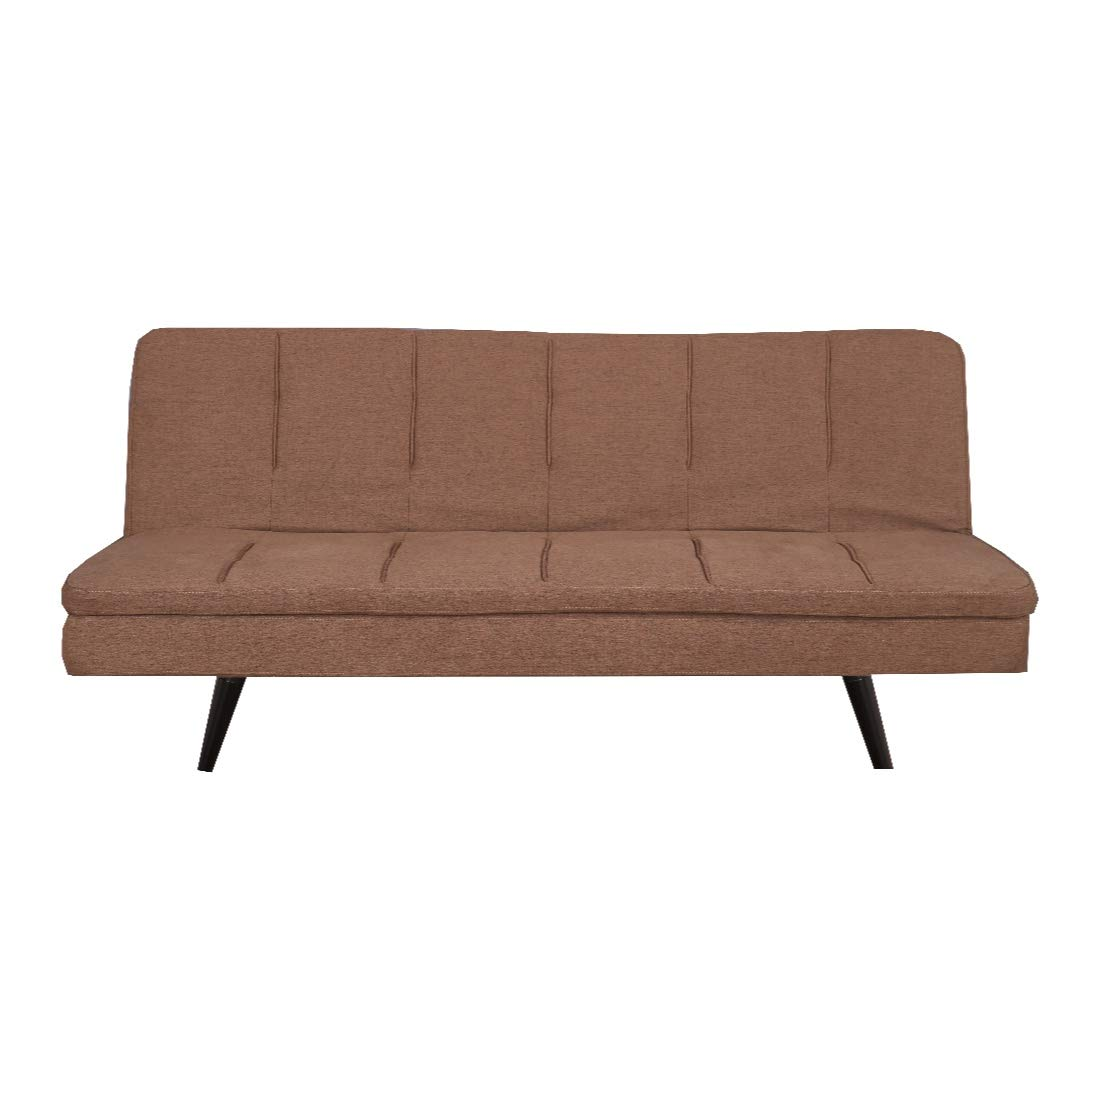 HomeTown Arthur Fabric Sofa Cum Bed in Brown Colour